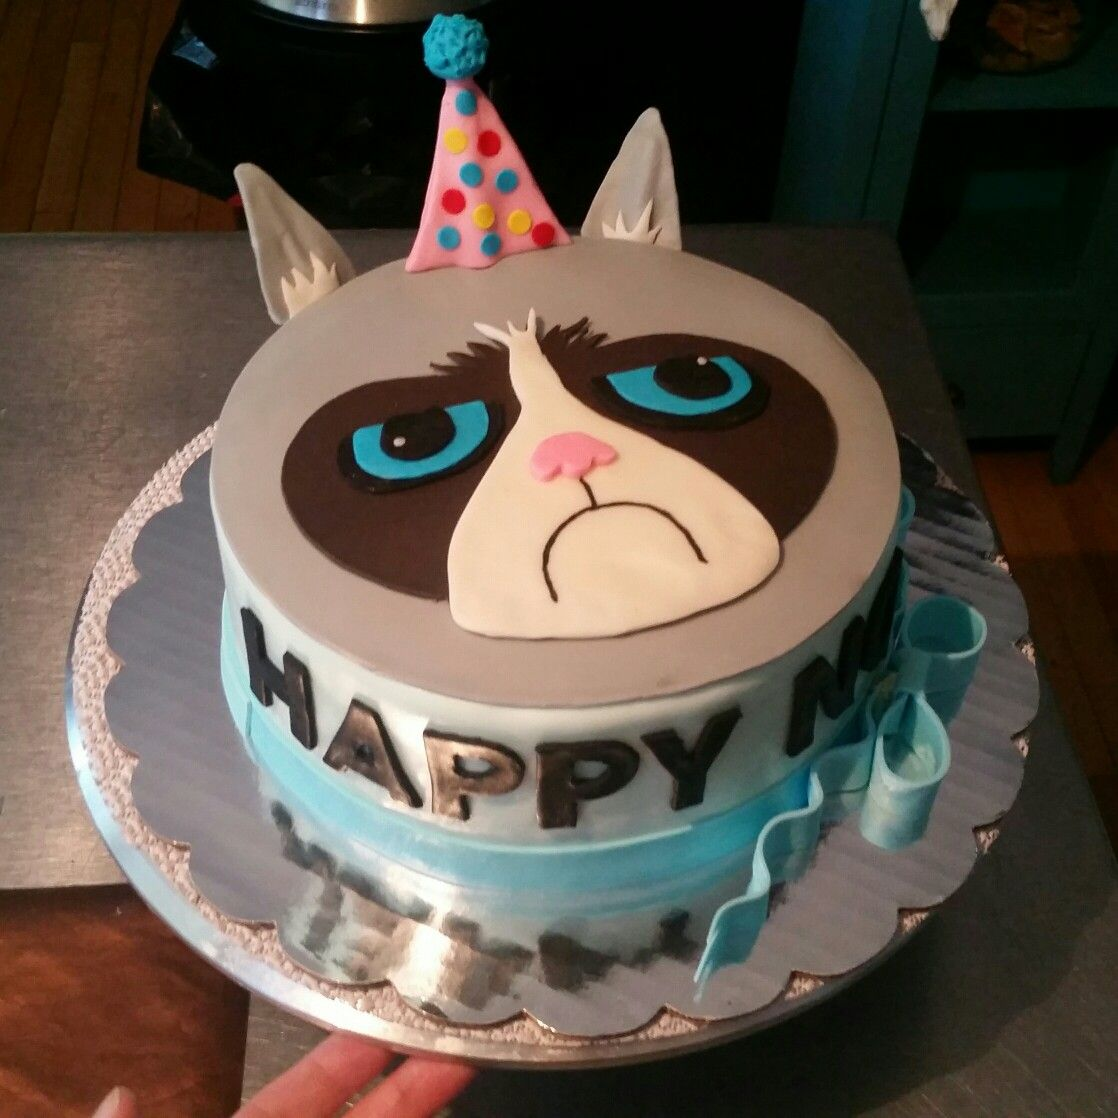 Grumpy Cat Cake Wicked Fancy Cakes Pinterest Grumpy cat cakes